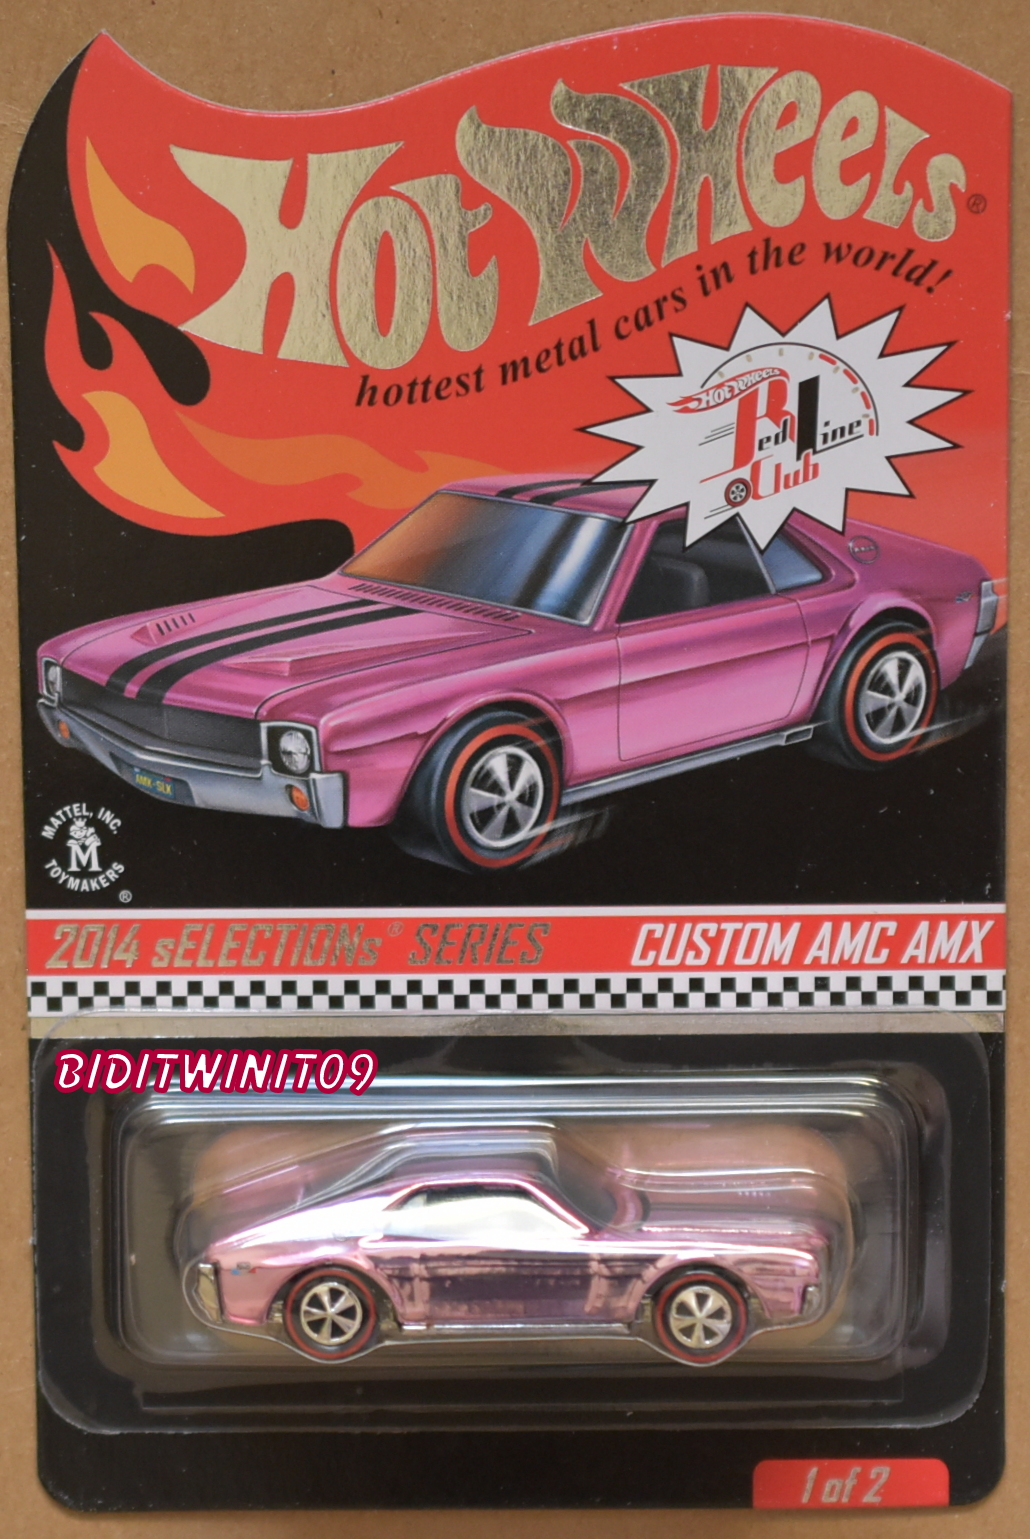 HOT WHEELS 2014 SELECTIONS SERIES RLC CUSTOM AMC AMX E+ [0015152